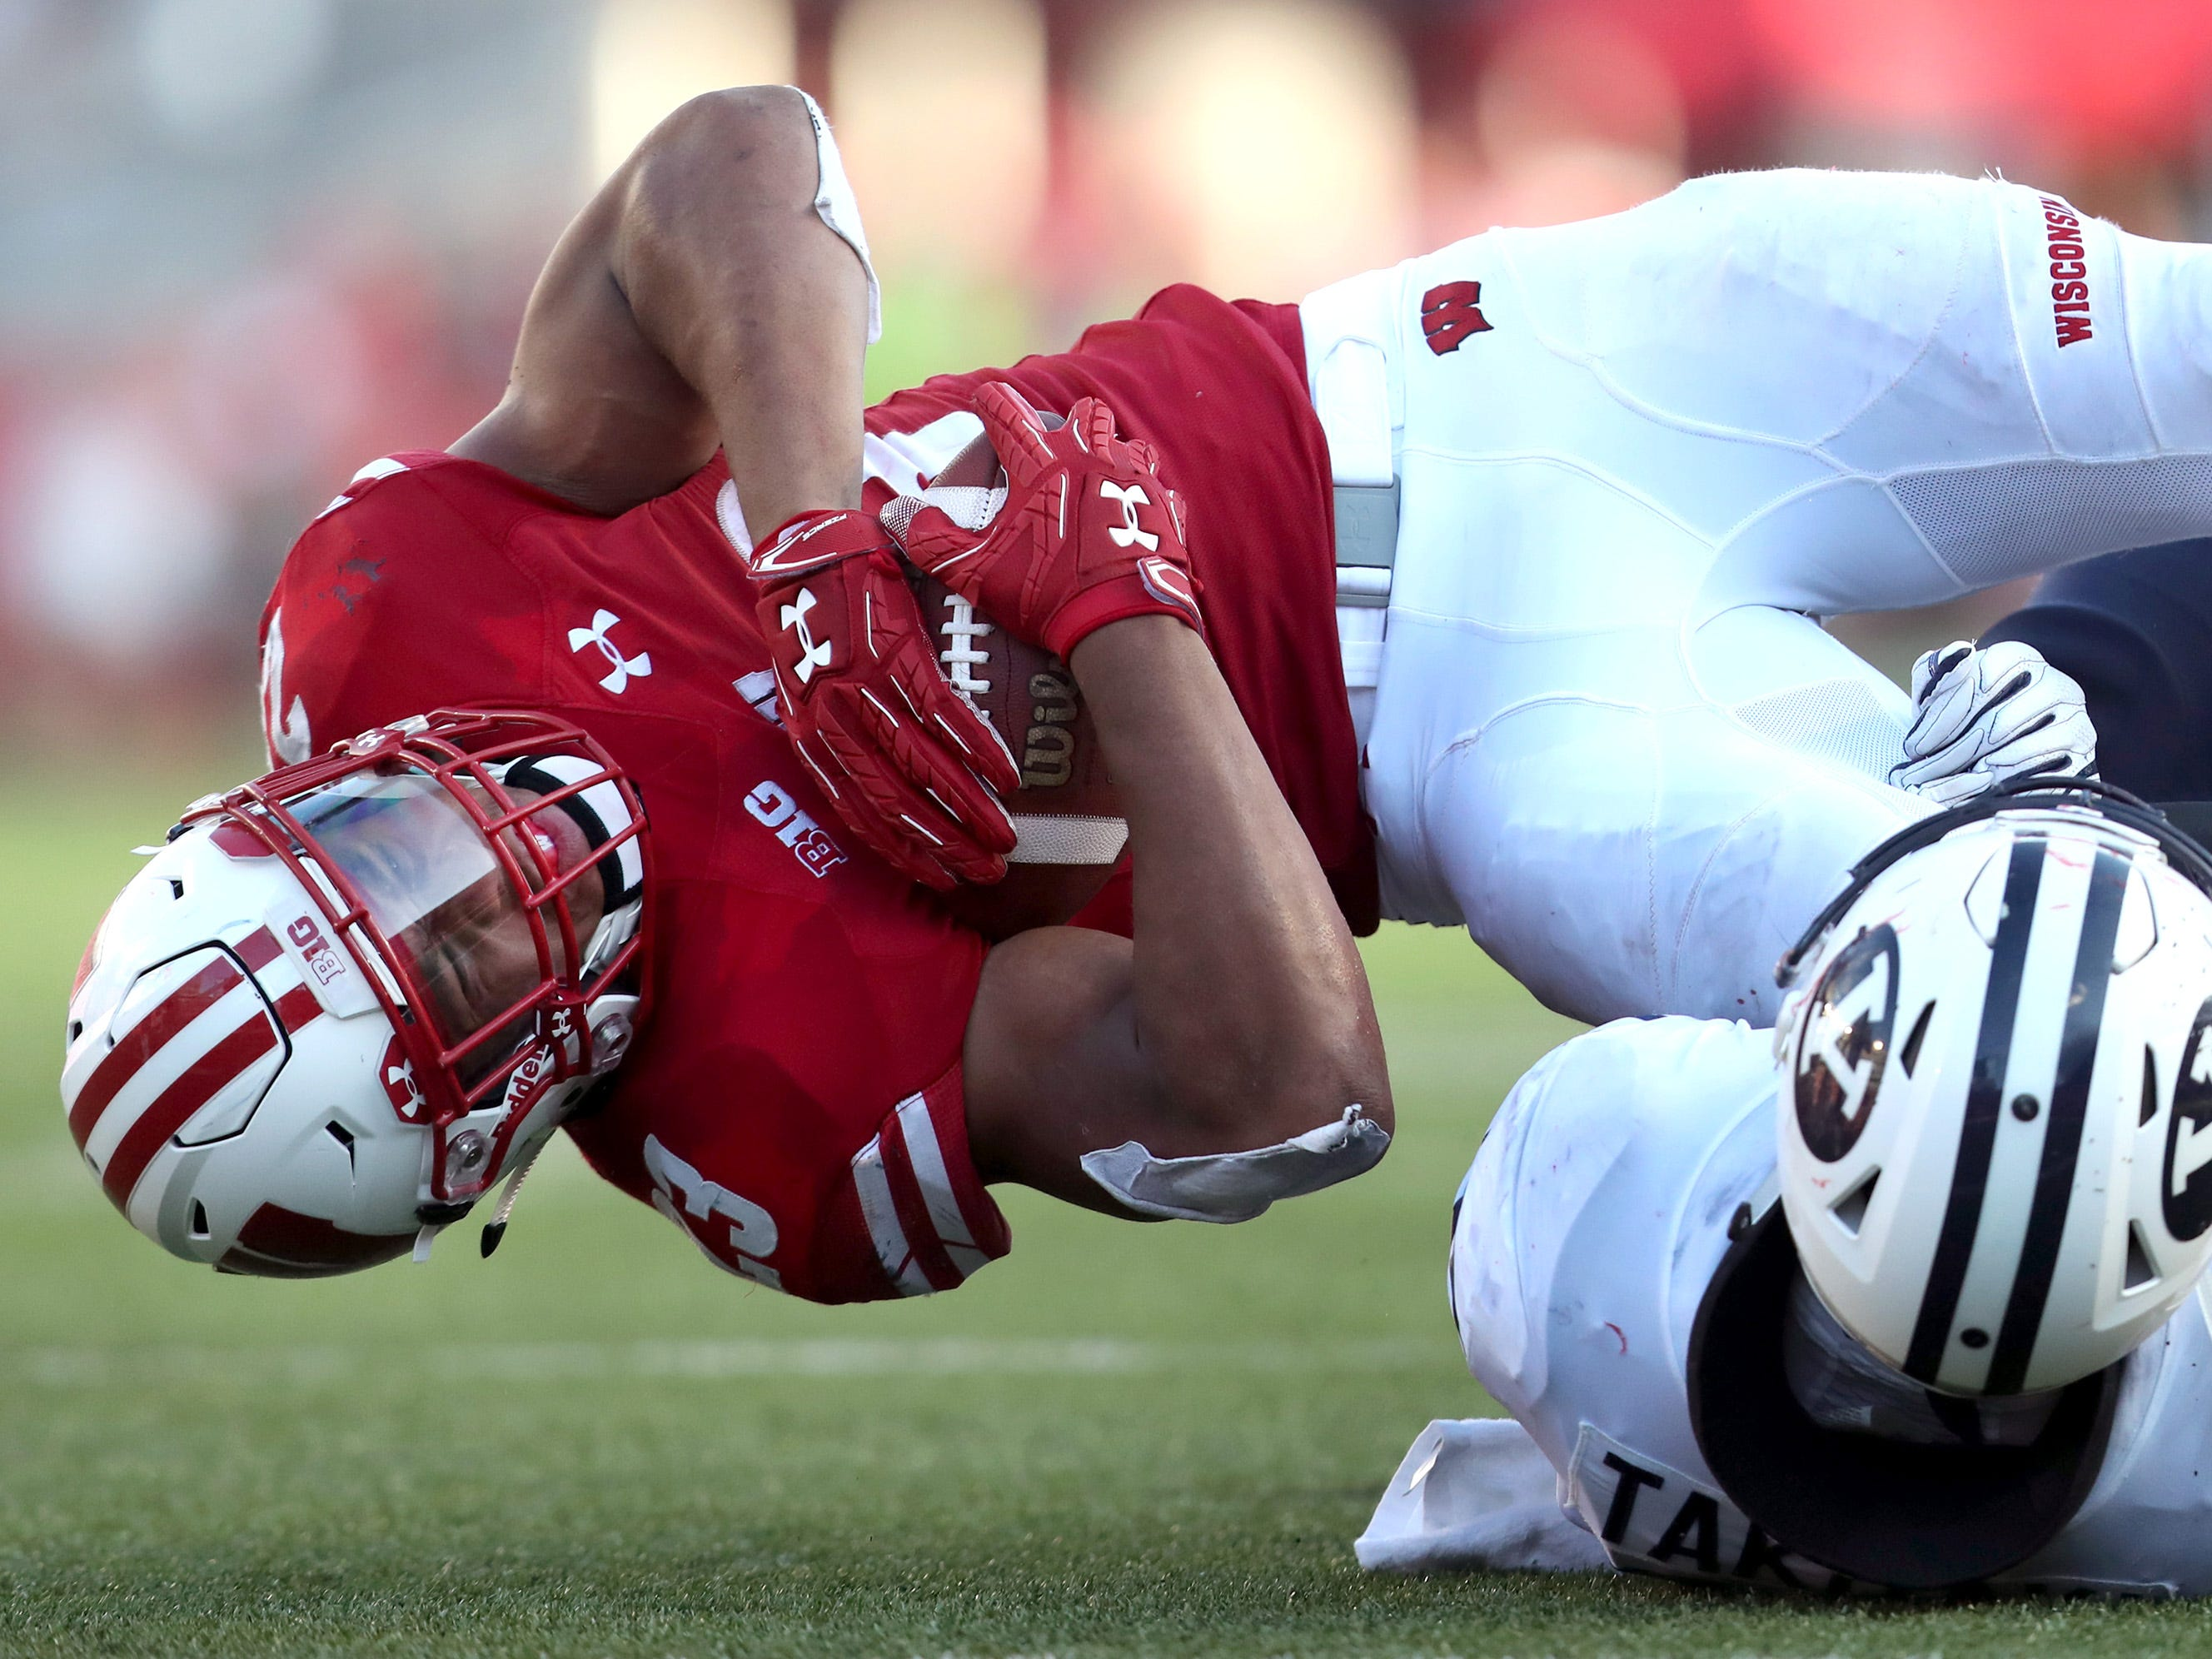 Wisconsin Badgers running back Jonathan Taylor is brought down by Brigham Young linebacker Sione Takitaki on Saturday.